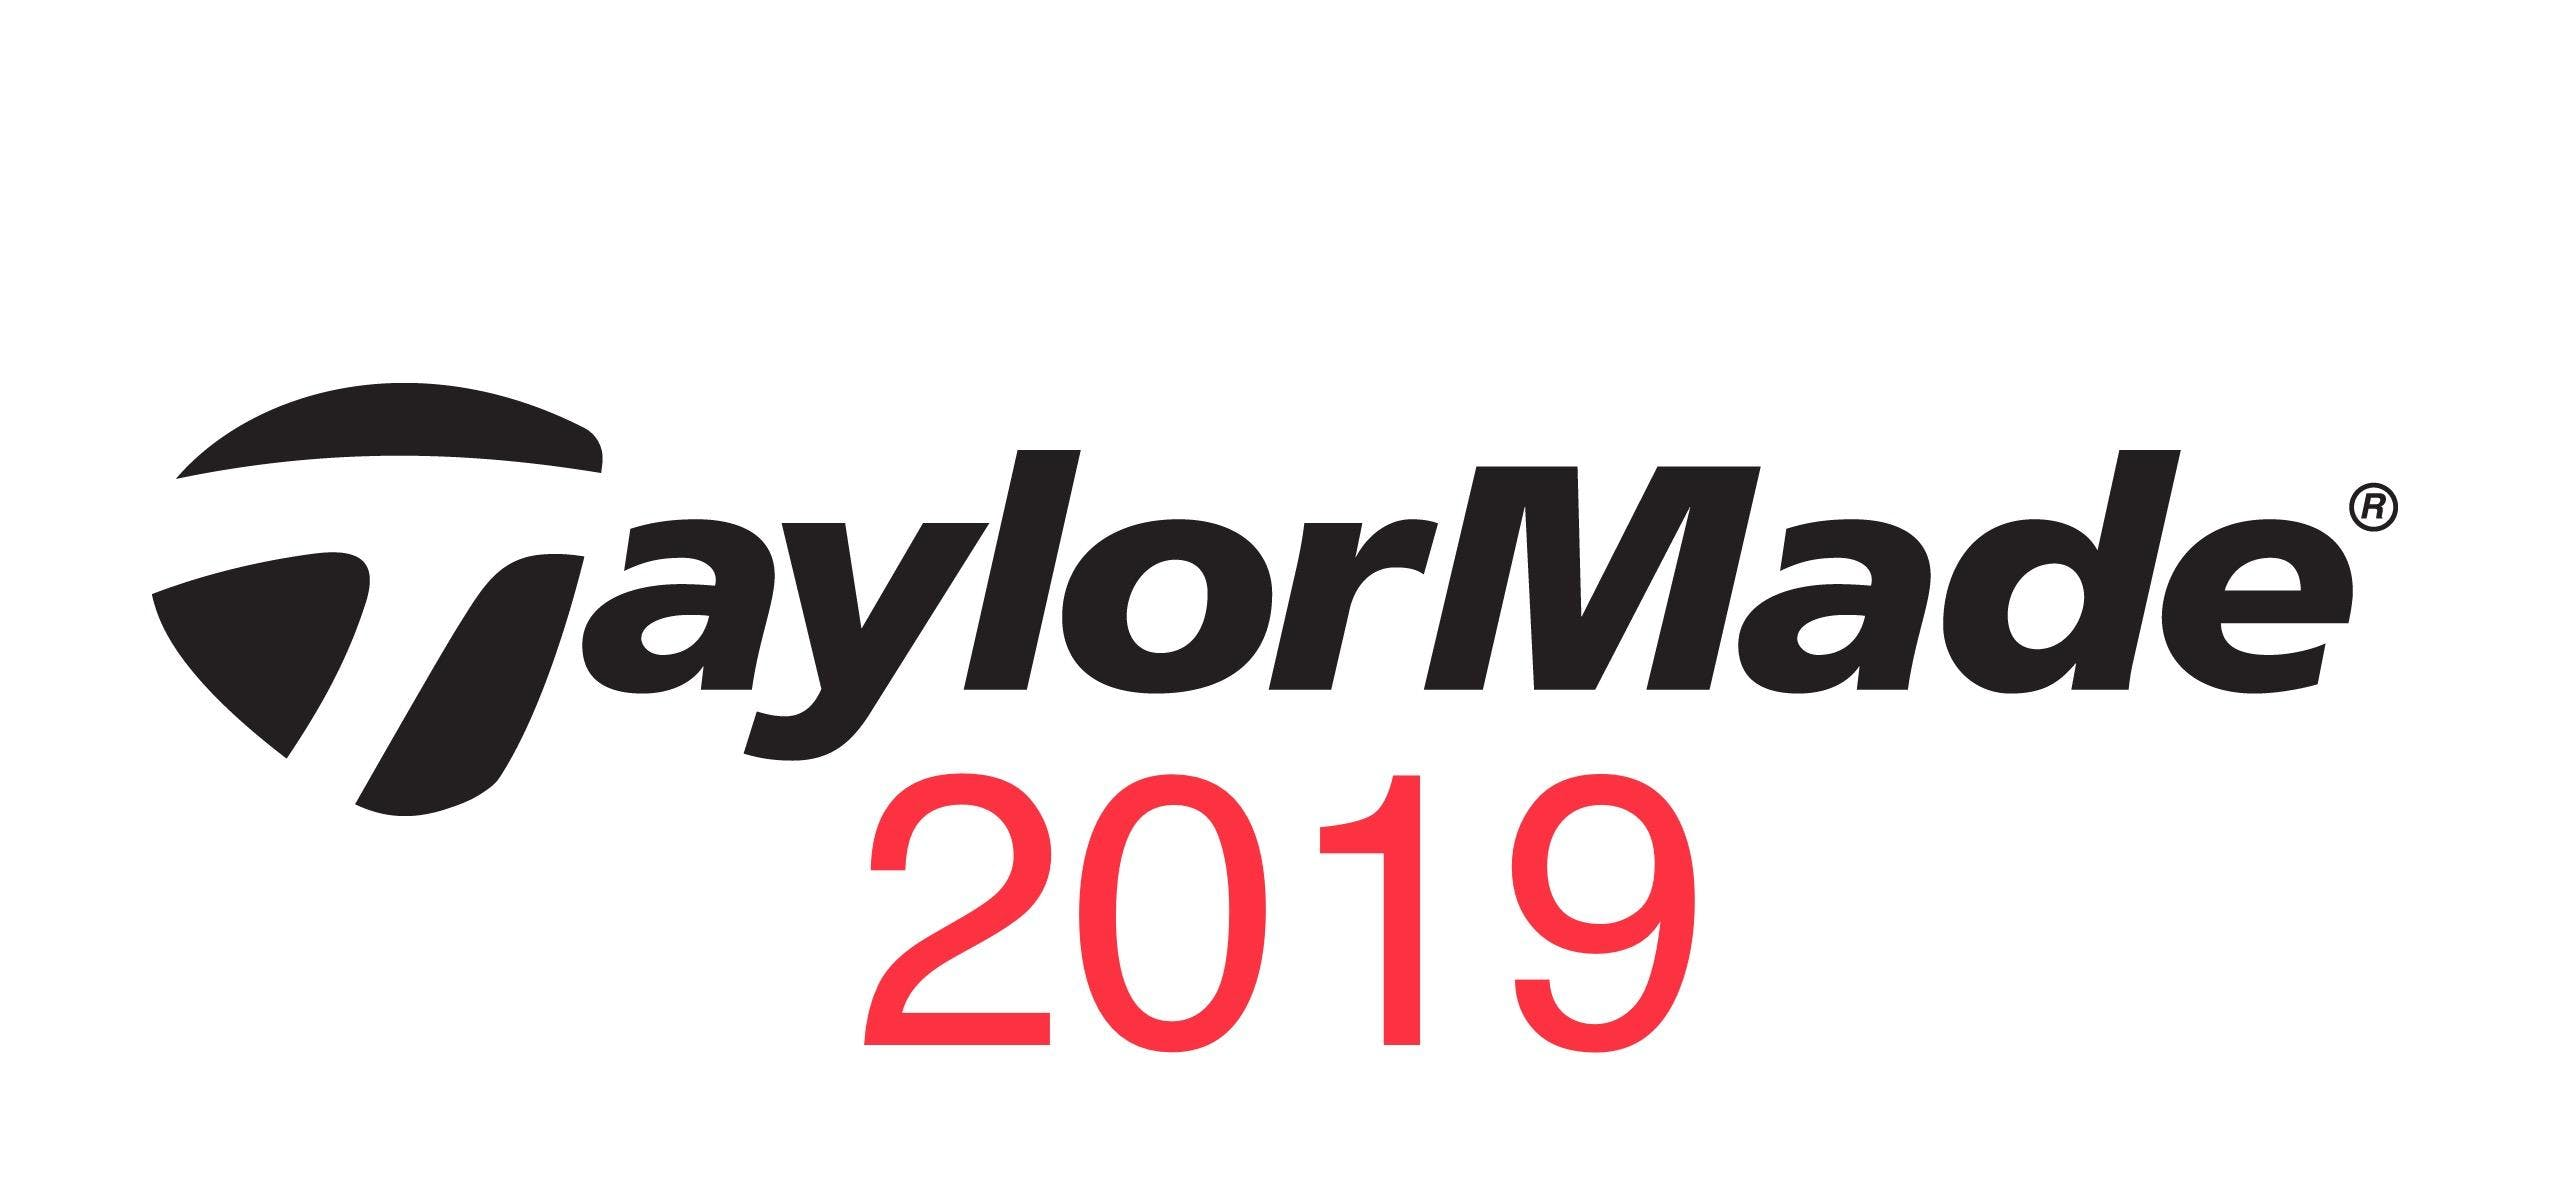 Taylormade 2019 Launch Demo event